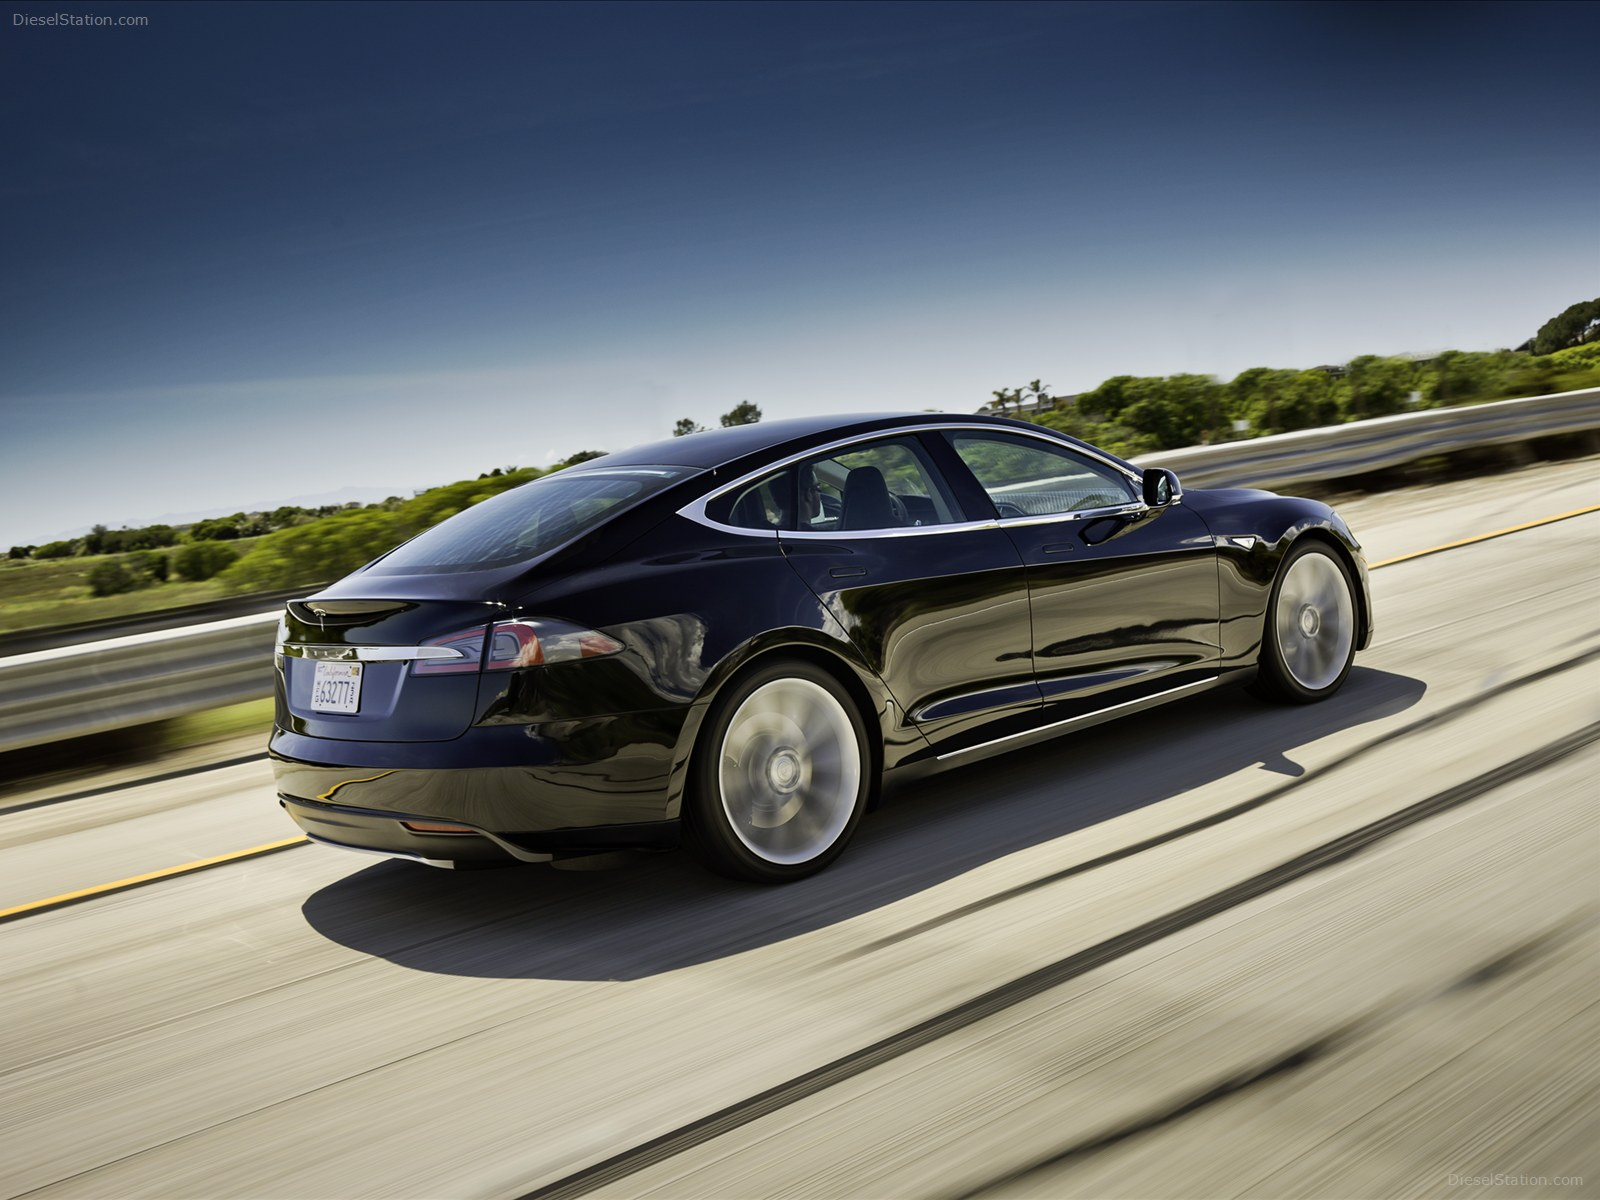 Tesla Model S electric sedan picture High Resolution Wallpaper Free